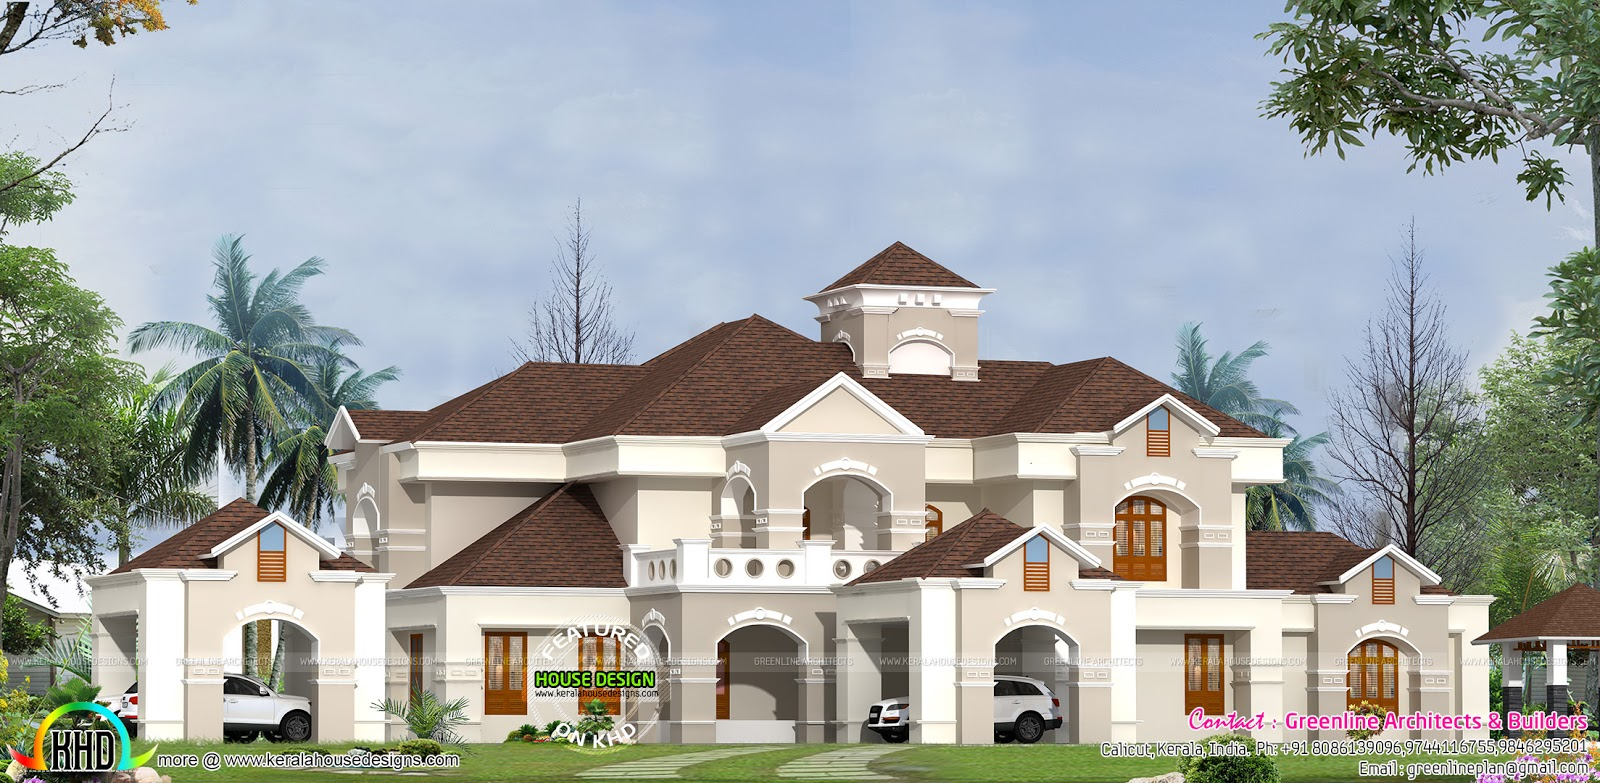 Super luxury villa design in Kerala Kerala home design and floor plans